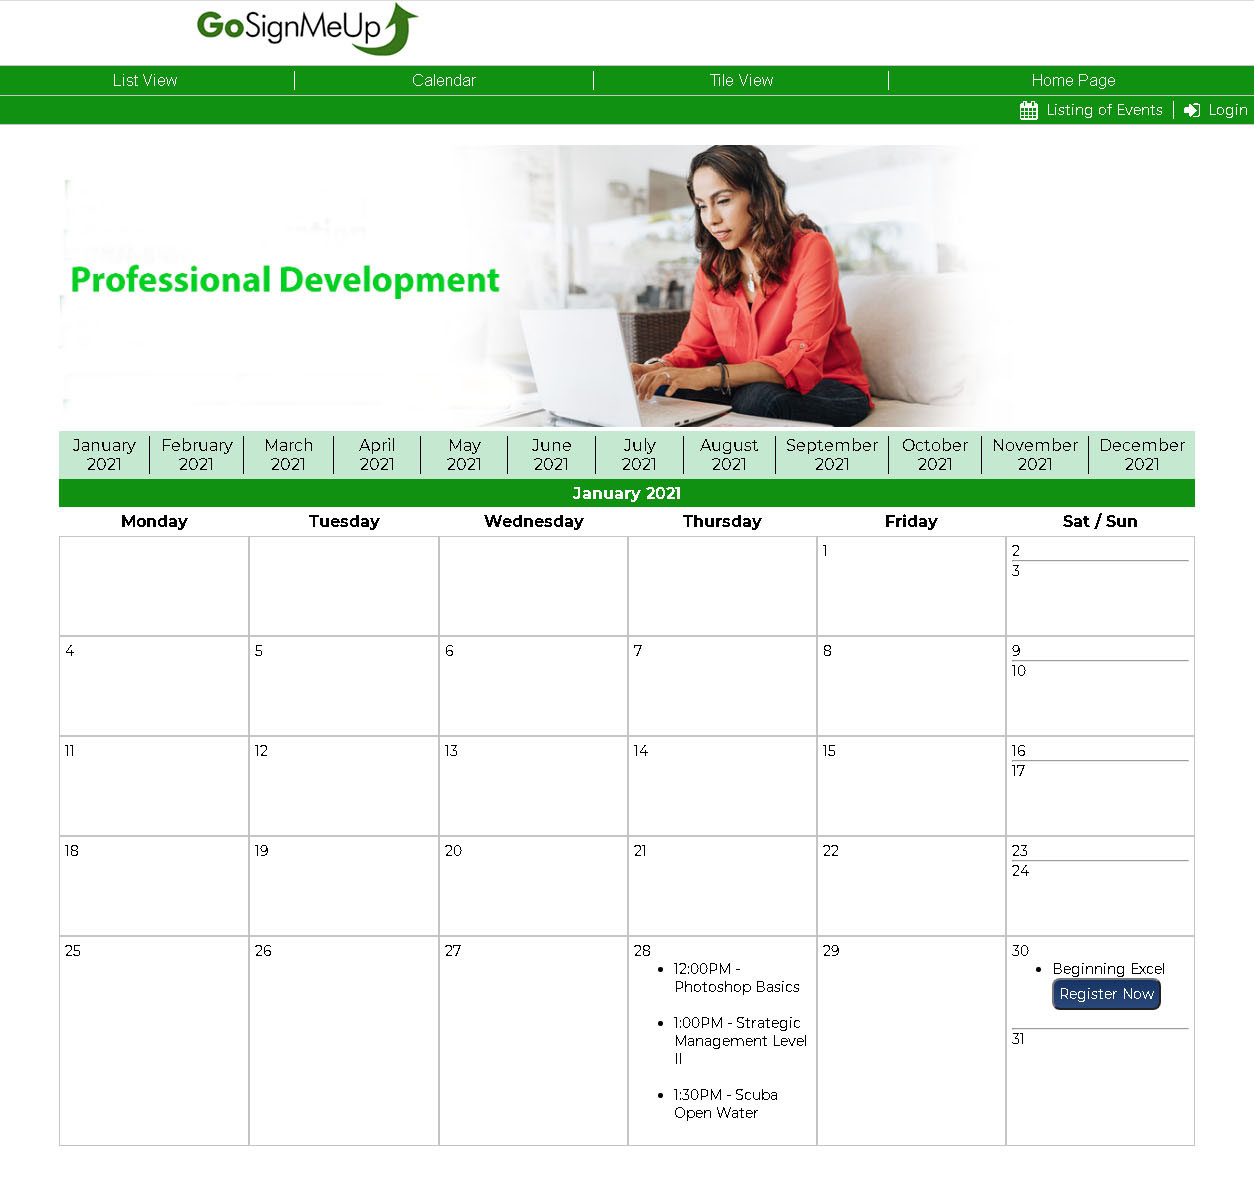 Display courses in a Calendar view